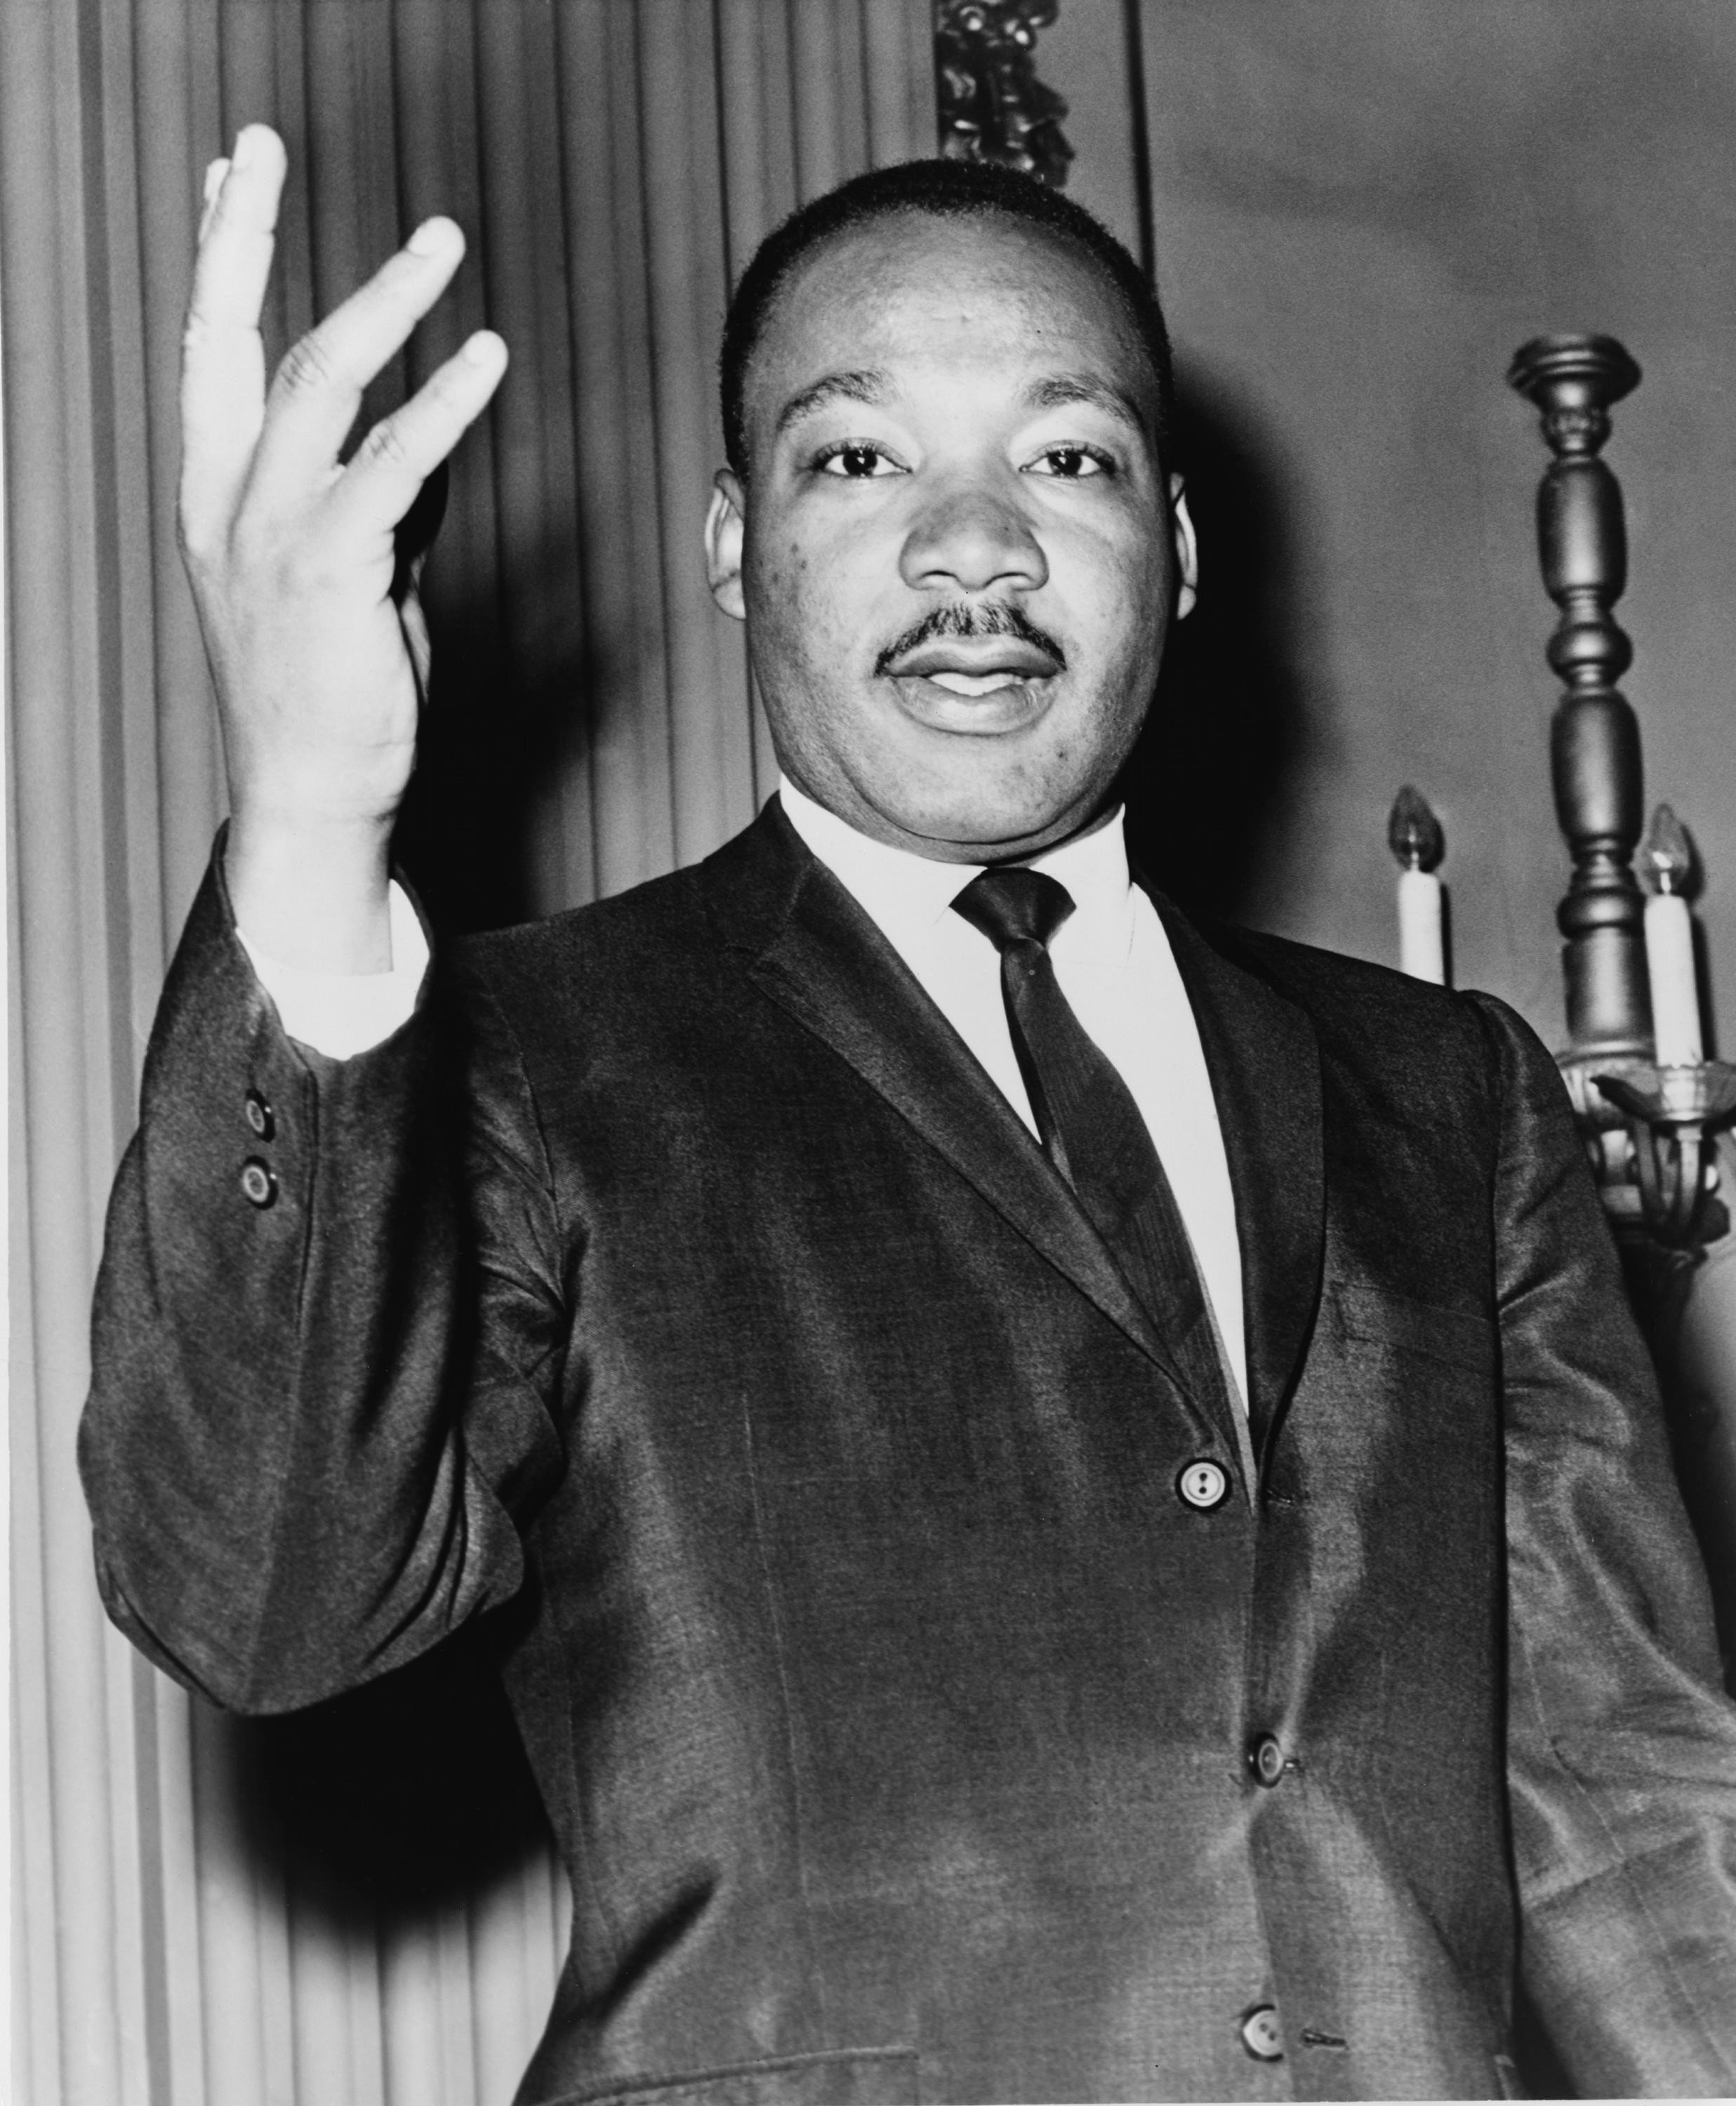 The Life, Legacy And Celebration Of Dr. Martin Luther King, Jr. | WVXU